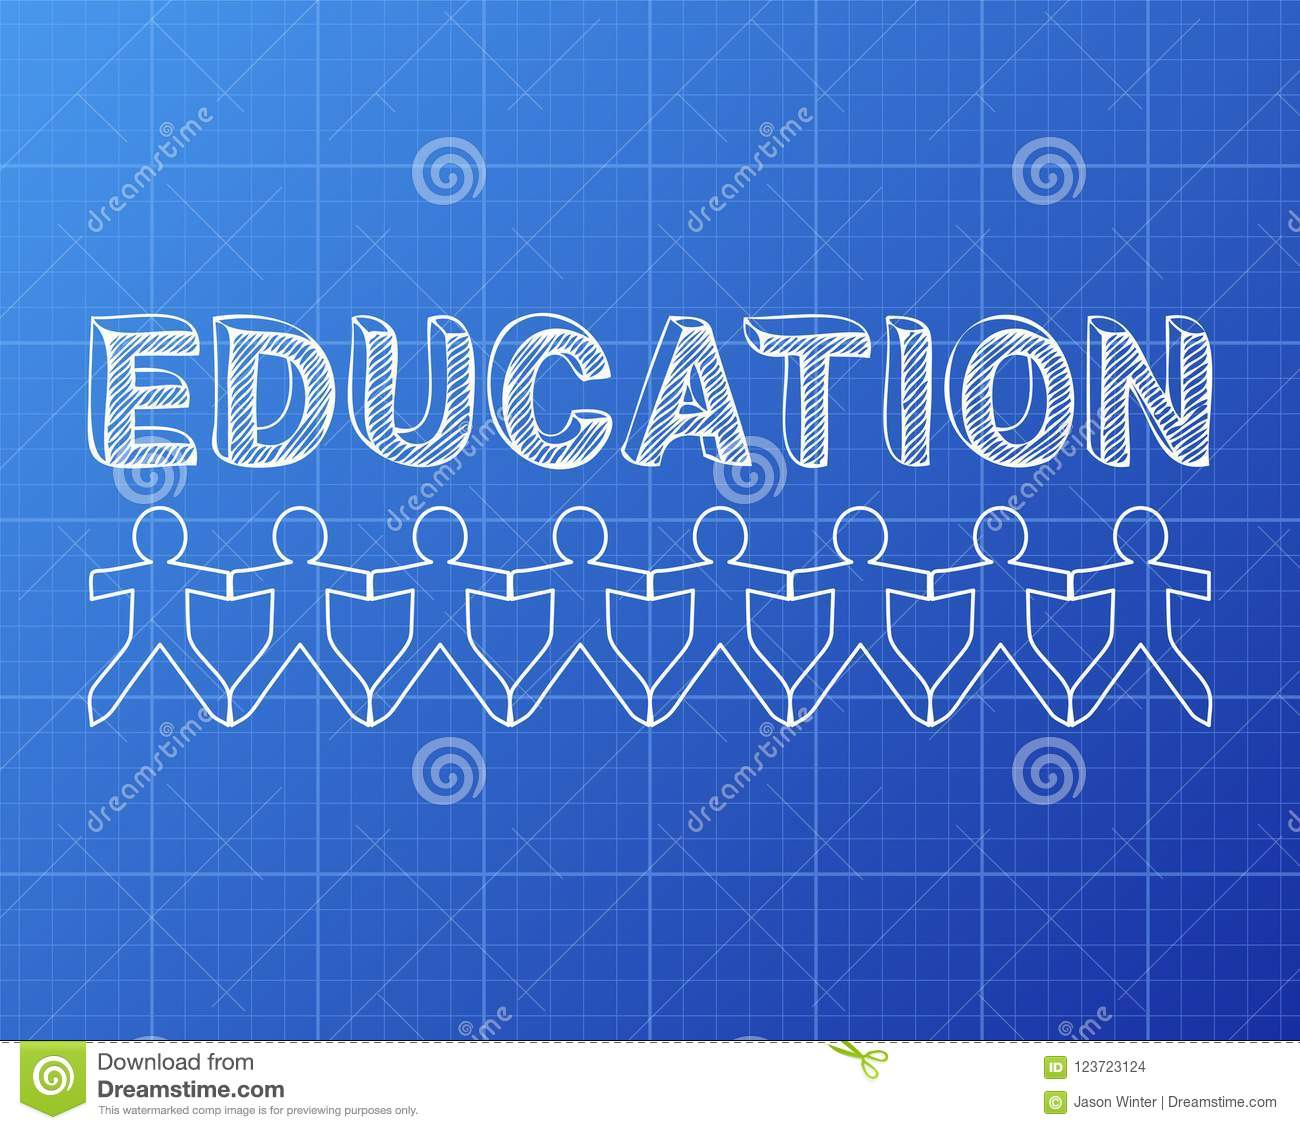 Education people blueprint stock vector illustration of word download education people blueprint stock vector illustration of word 123723124 malvernweather Gallery